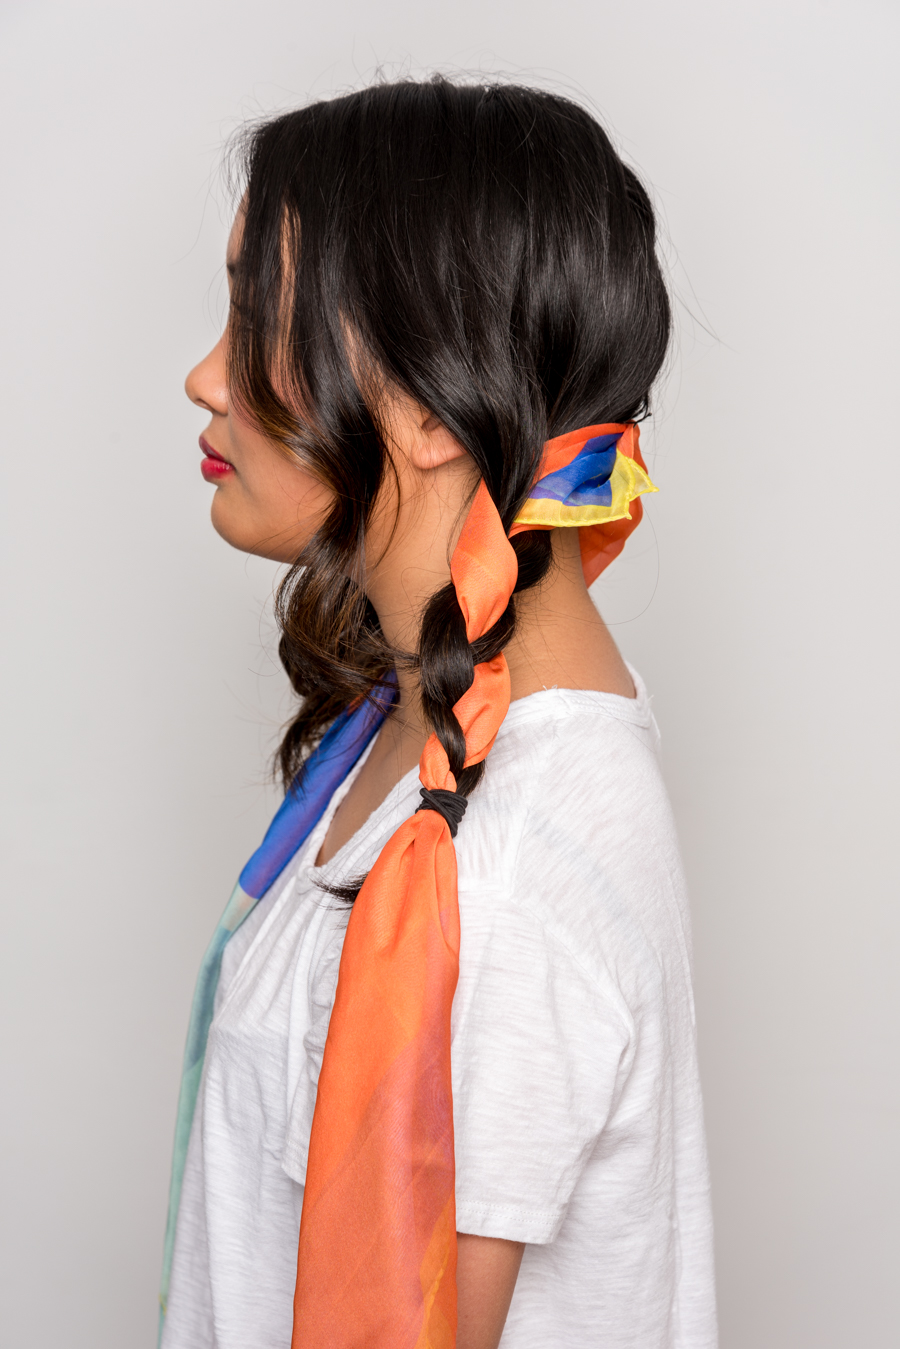 How To Use A Scarf For Stylish Summer Hair スカーフを使った簡単ヘアアレンジ 8